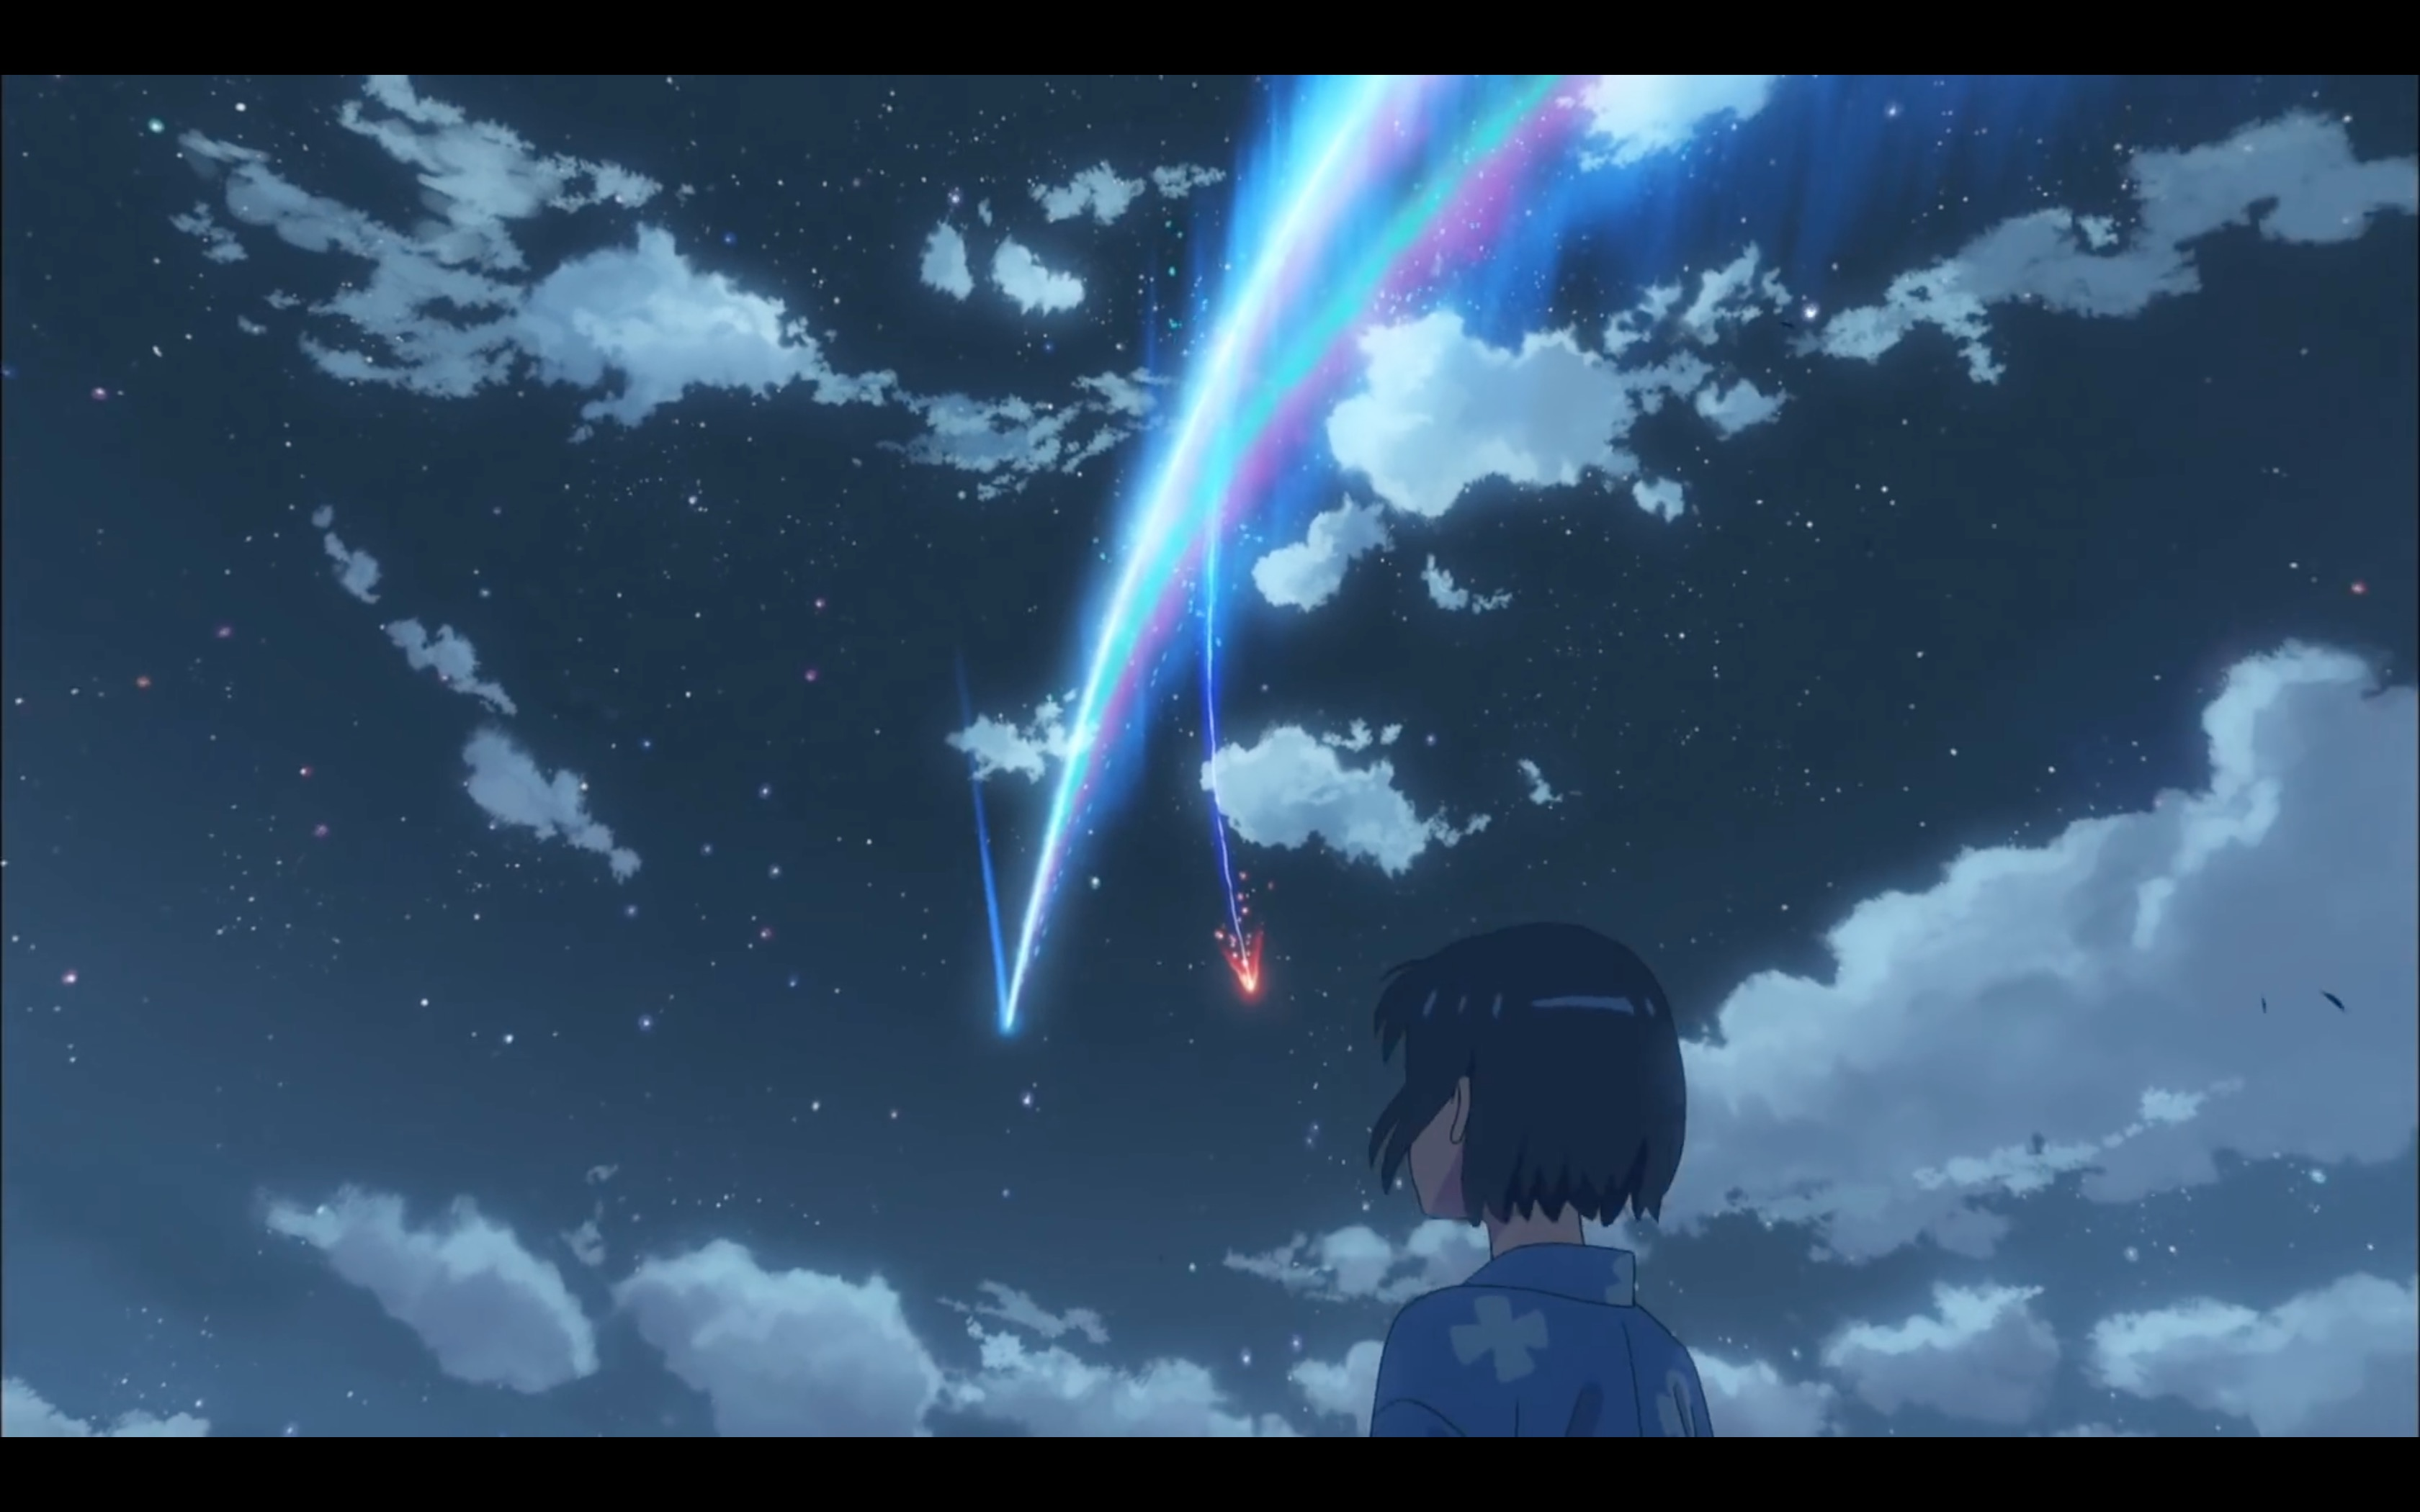 Your Name Anime Wallpaper , HD Wallpaper & Backgrounds